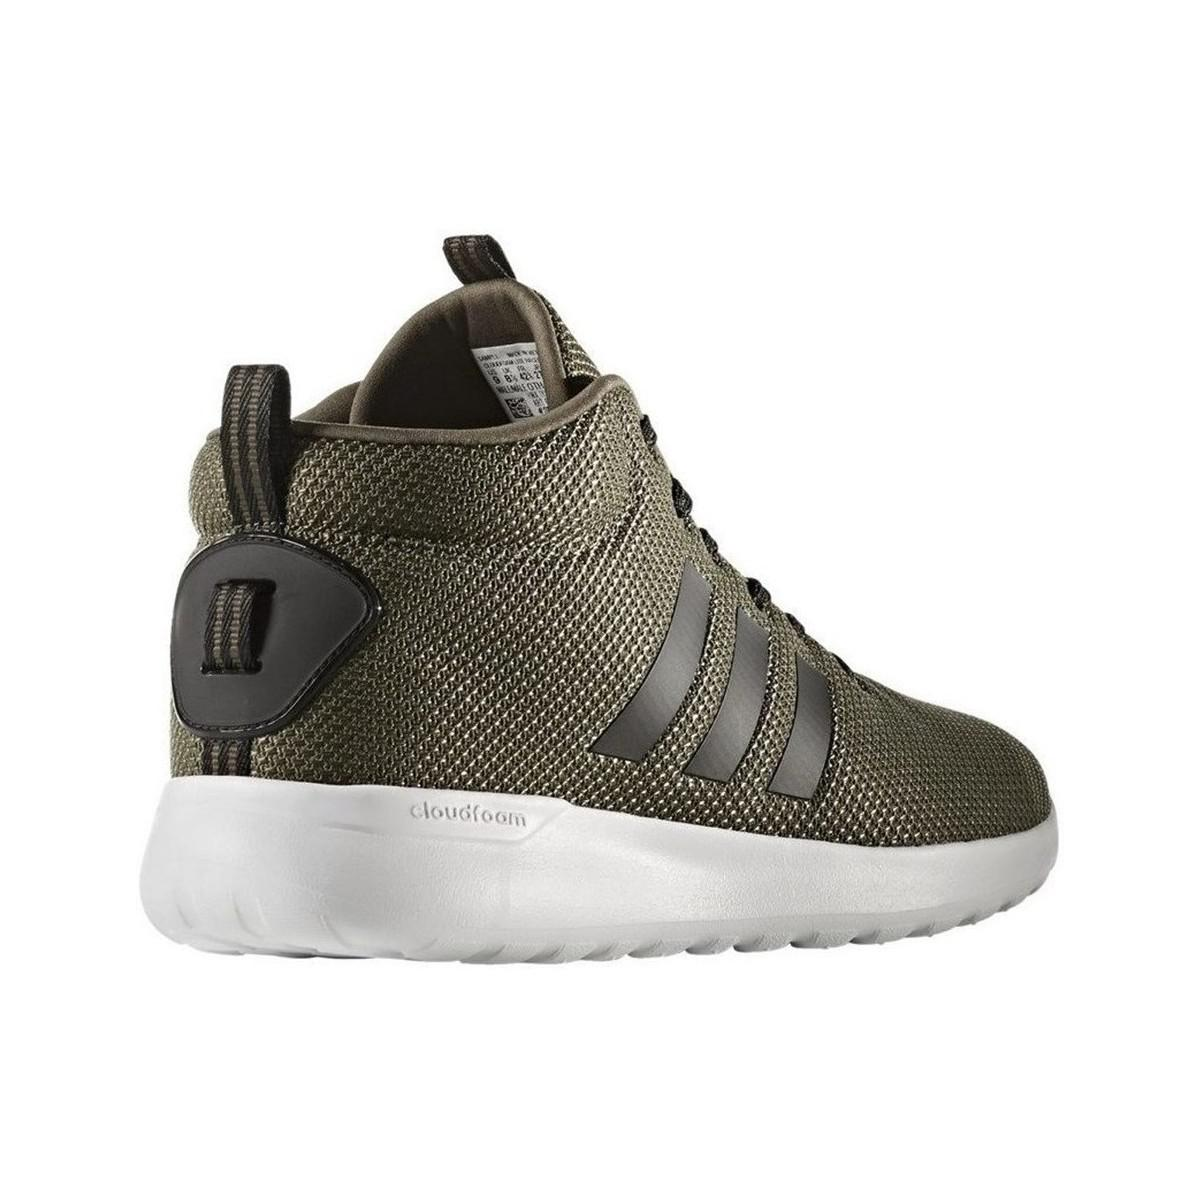 Adidas Neo Cloudfoam Cf Lite Racer Mid Men's Shoes (high top Trainers) In Green for men